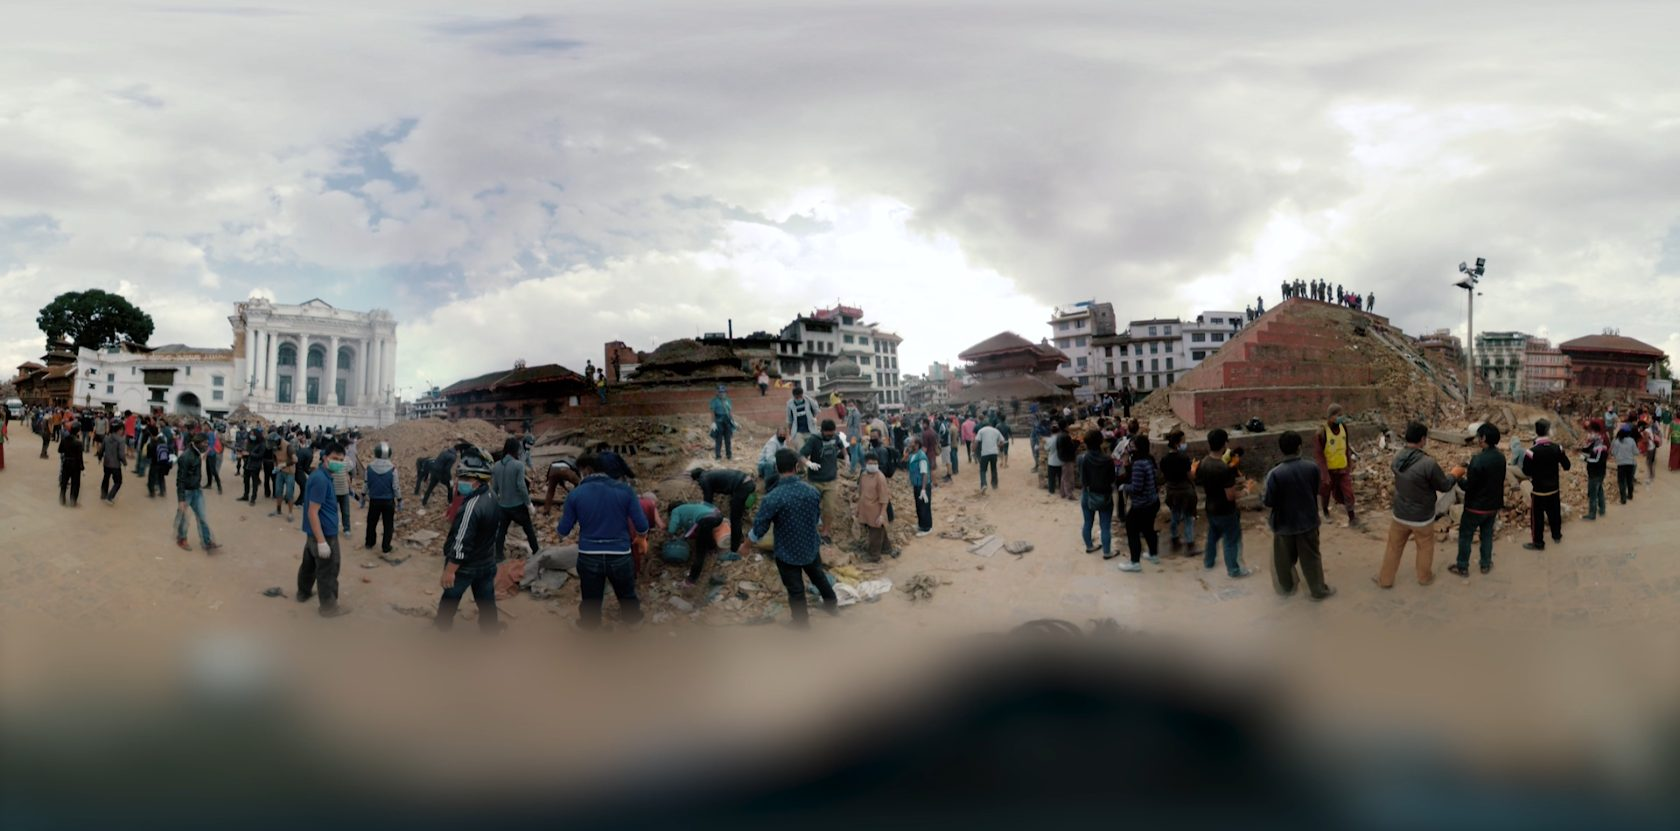 A panoramic image of people in a city from the 360-degree VR film, Vibrations.